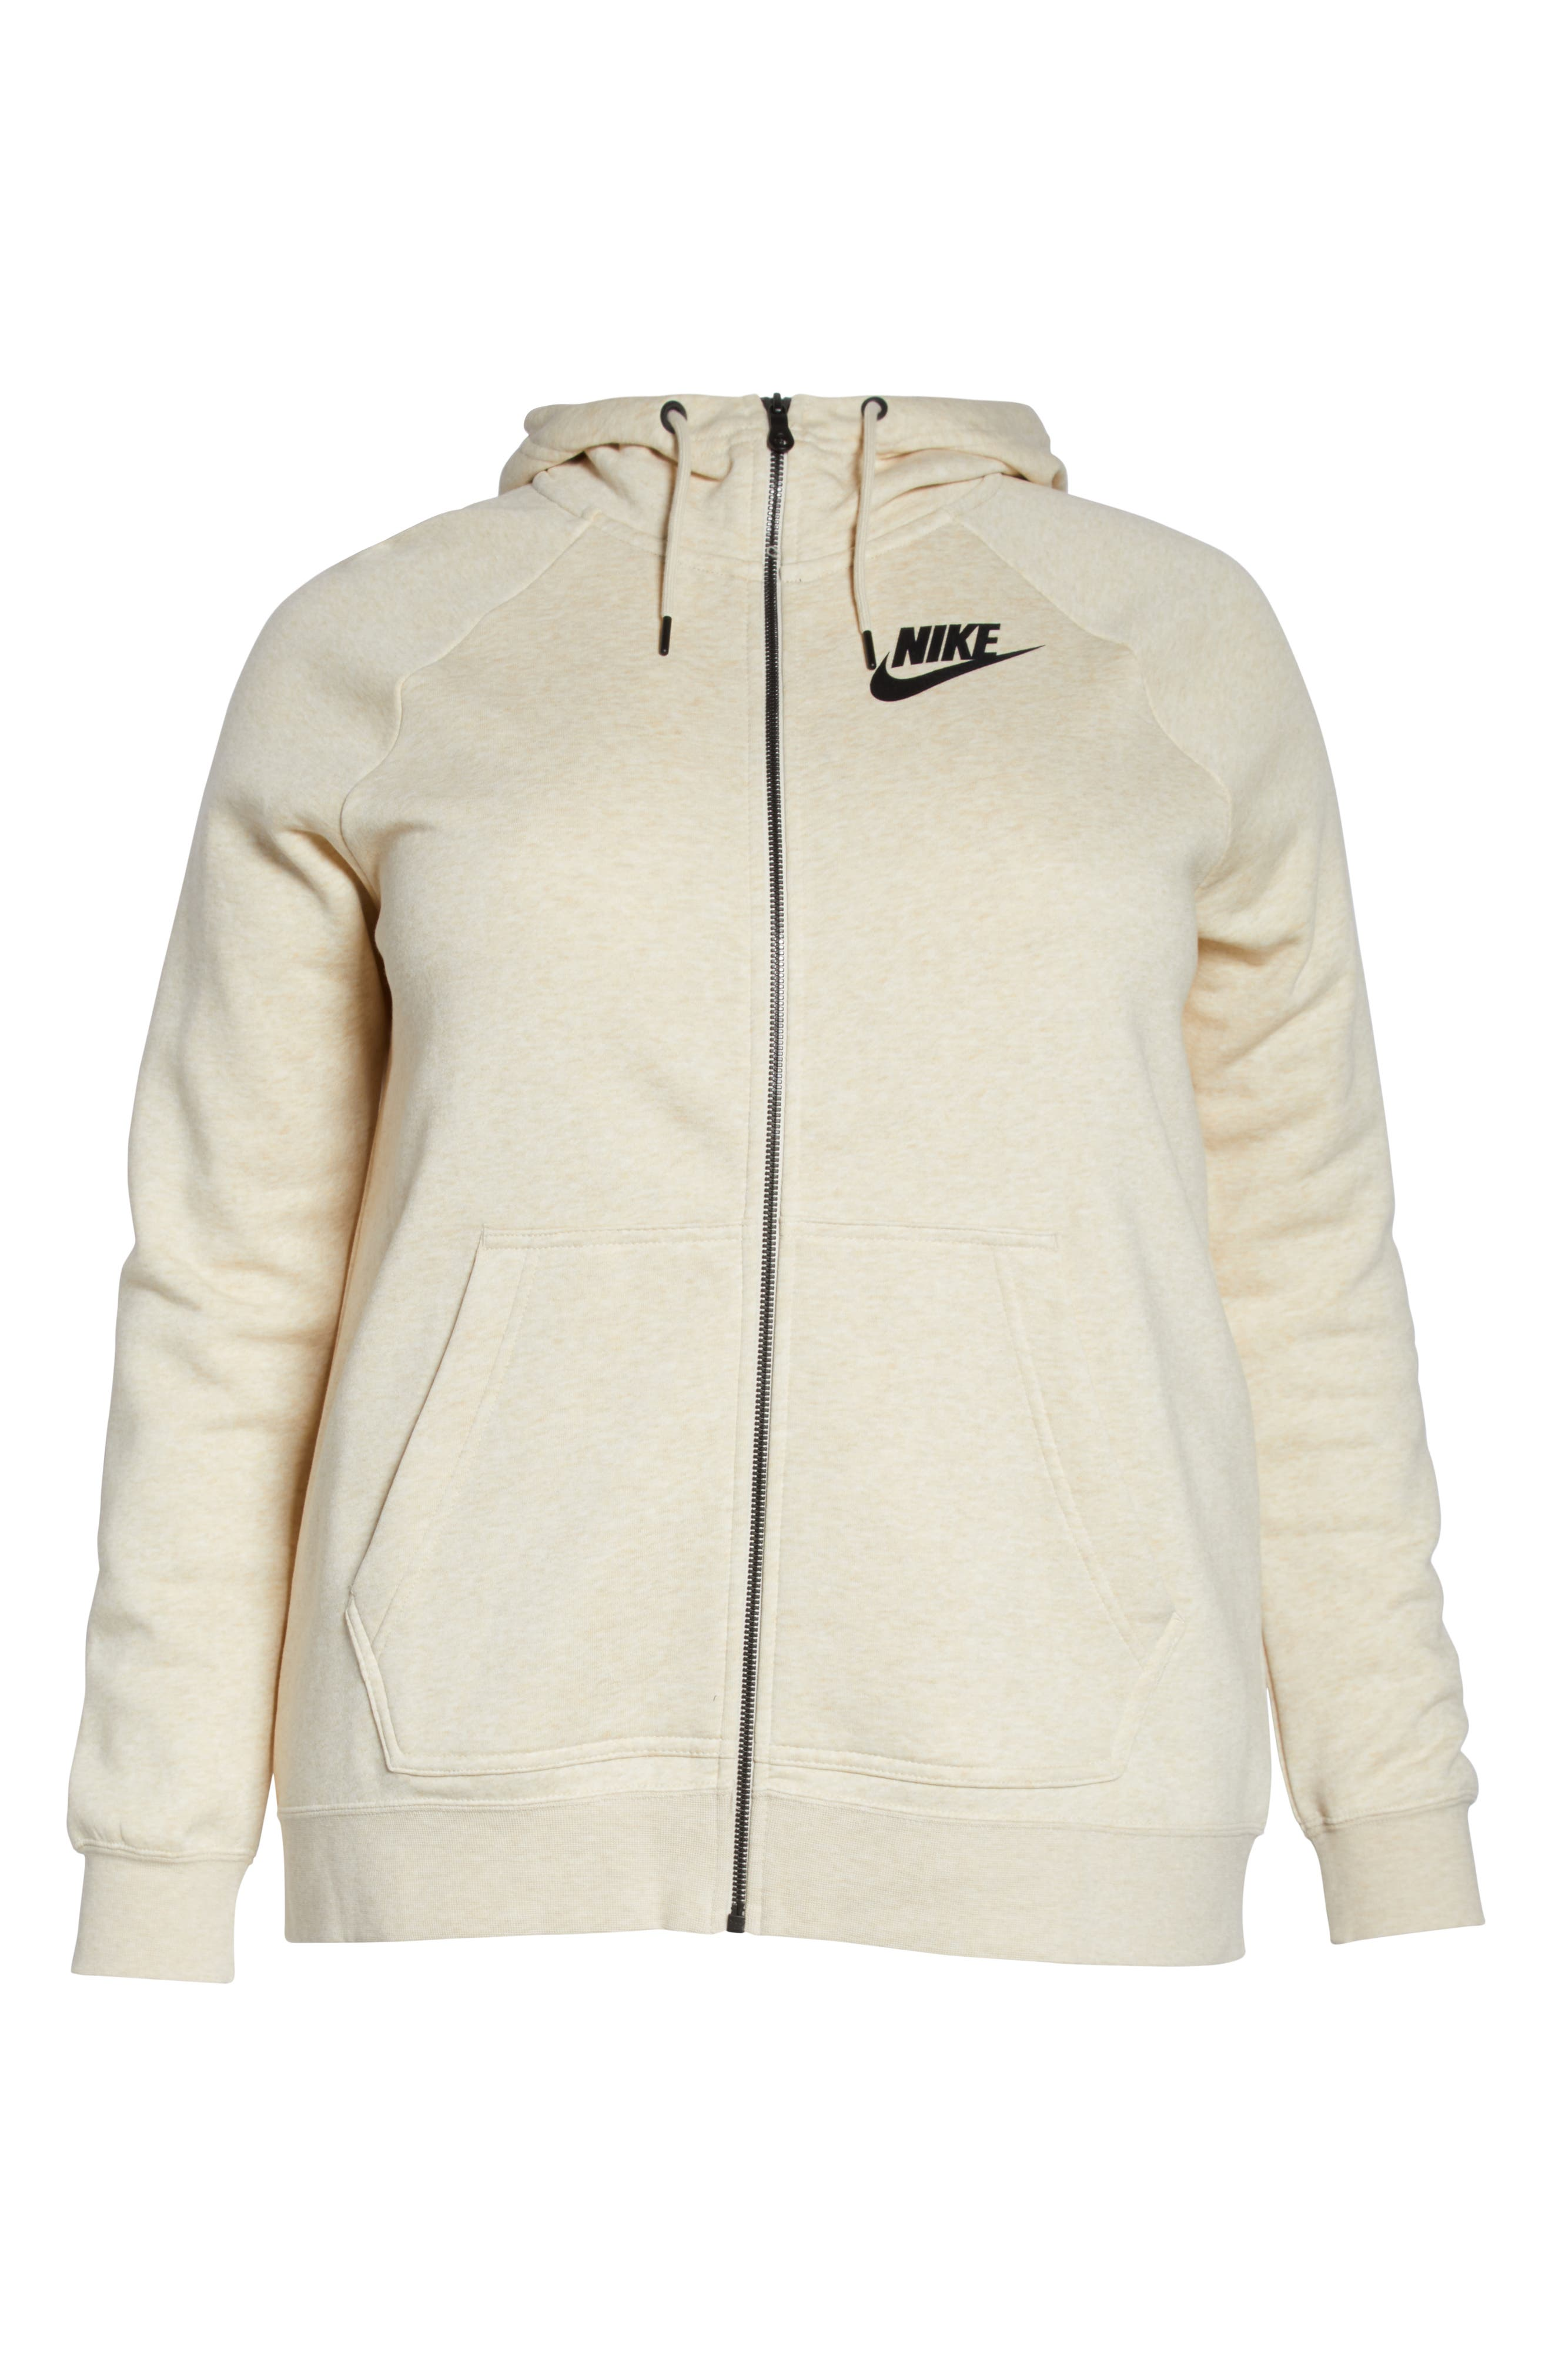 NSW Rally Hooded Jacket,                             Alternate thumbnail 7, color,                             LIGHT CREAM/ HEATHER/ BLACK